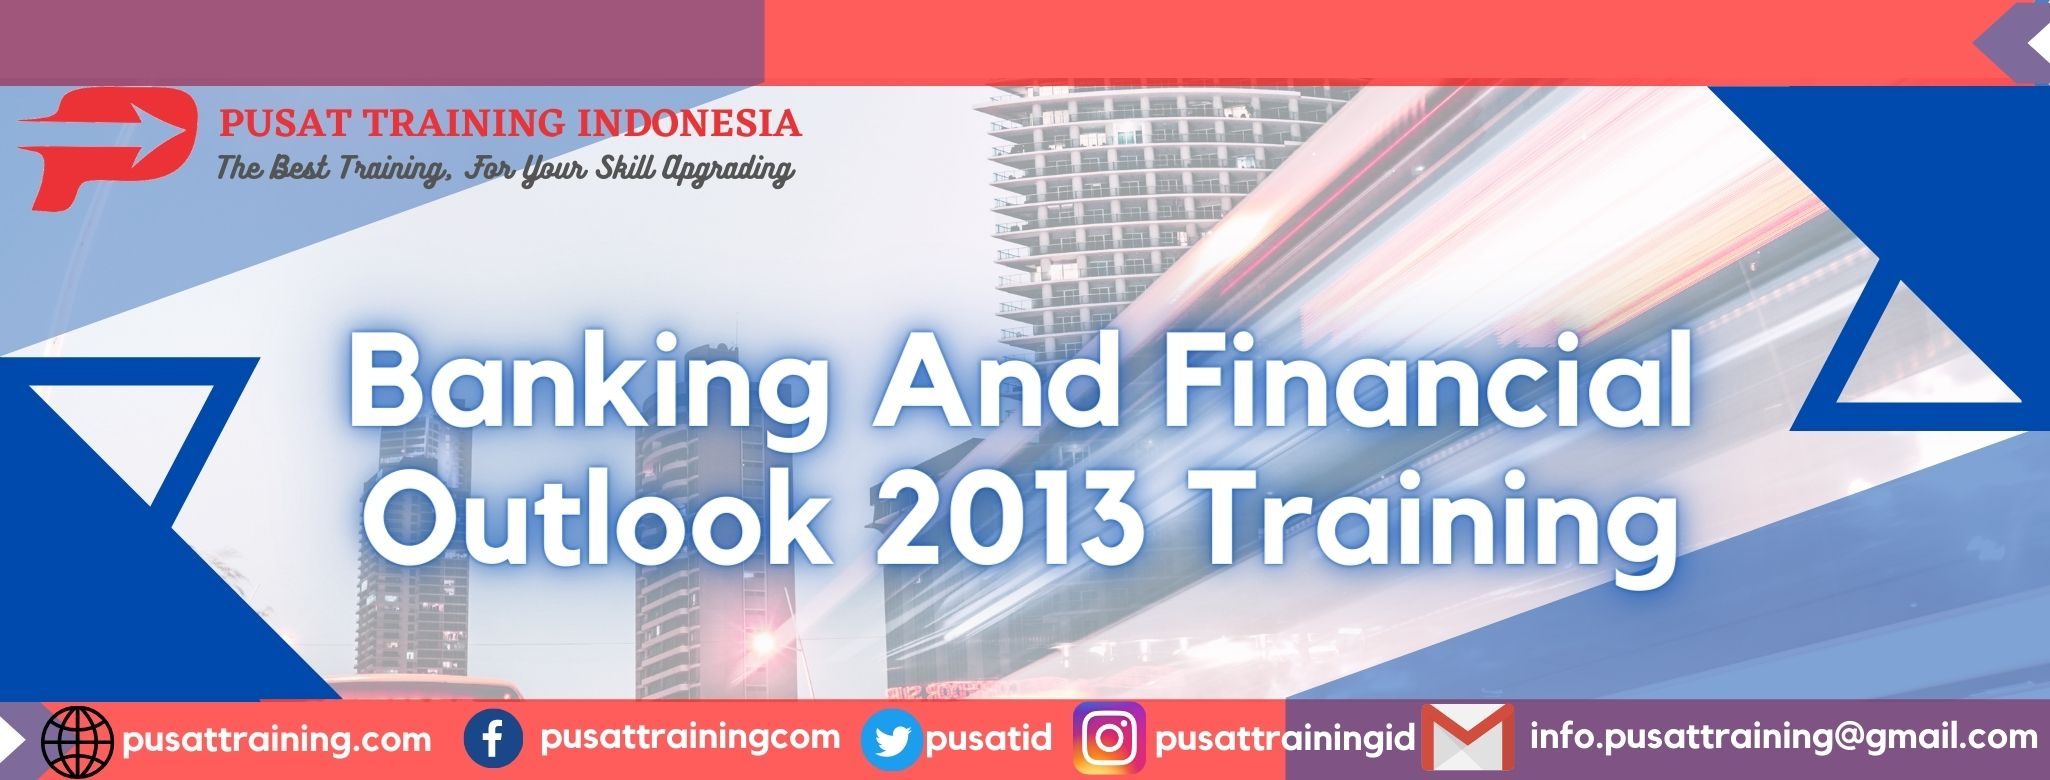 Banking-And-Financial-Outlook-2013-Training